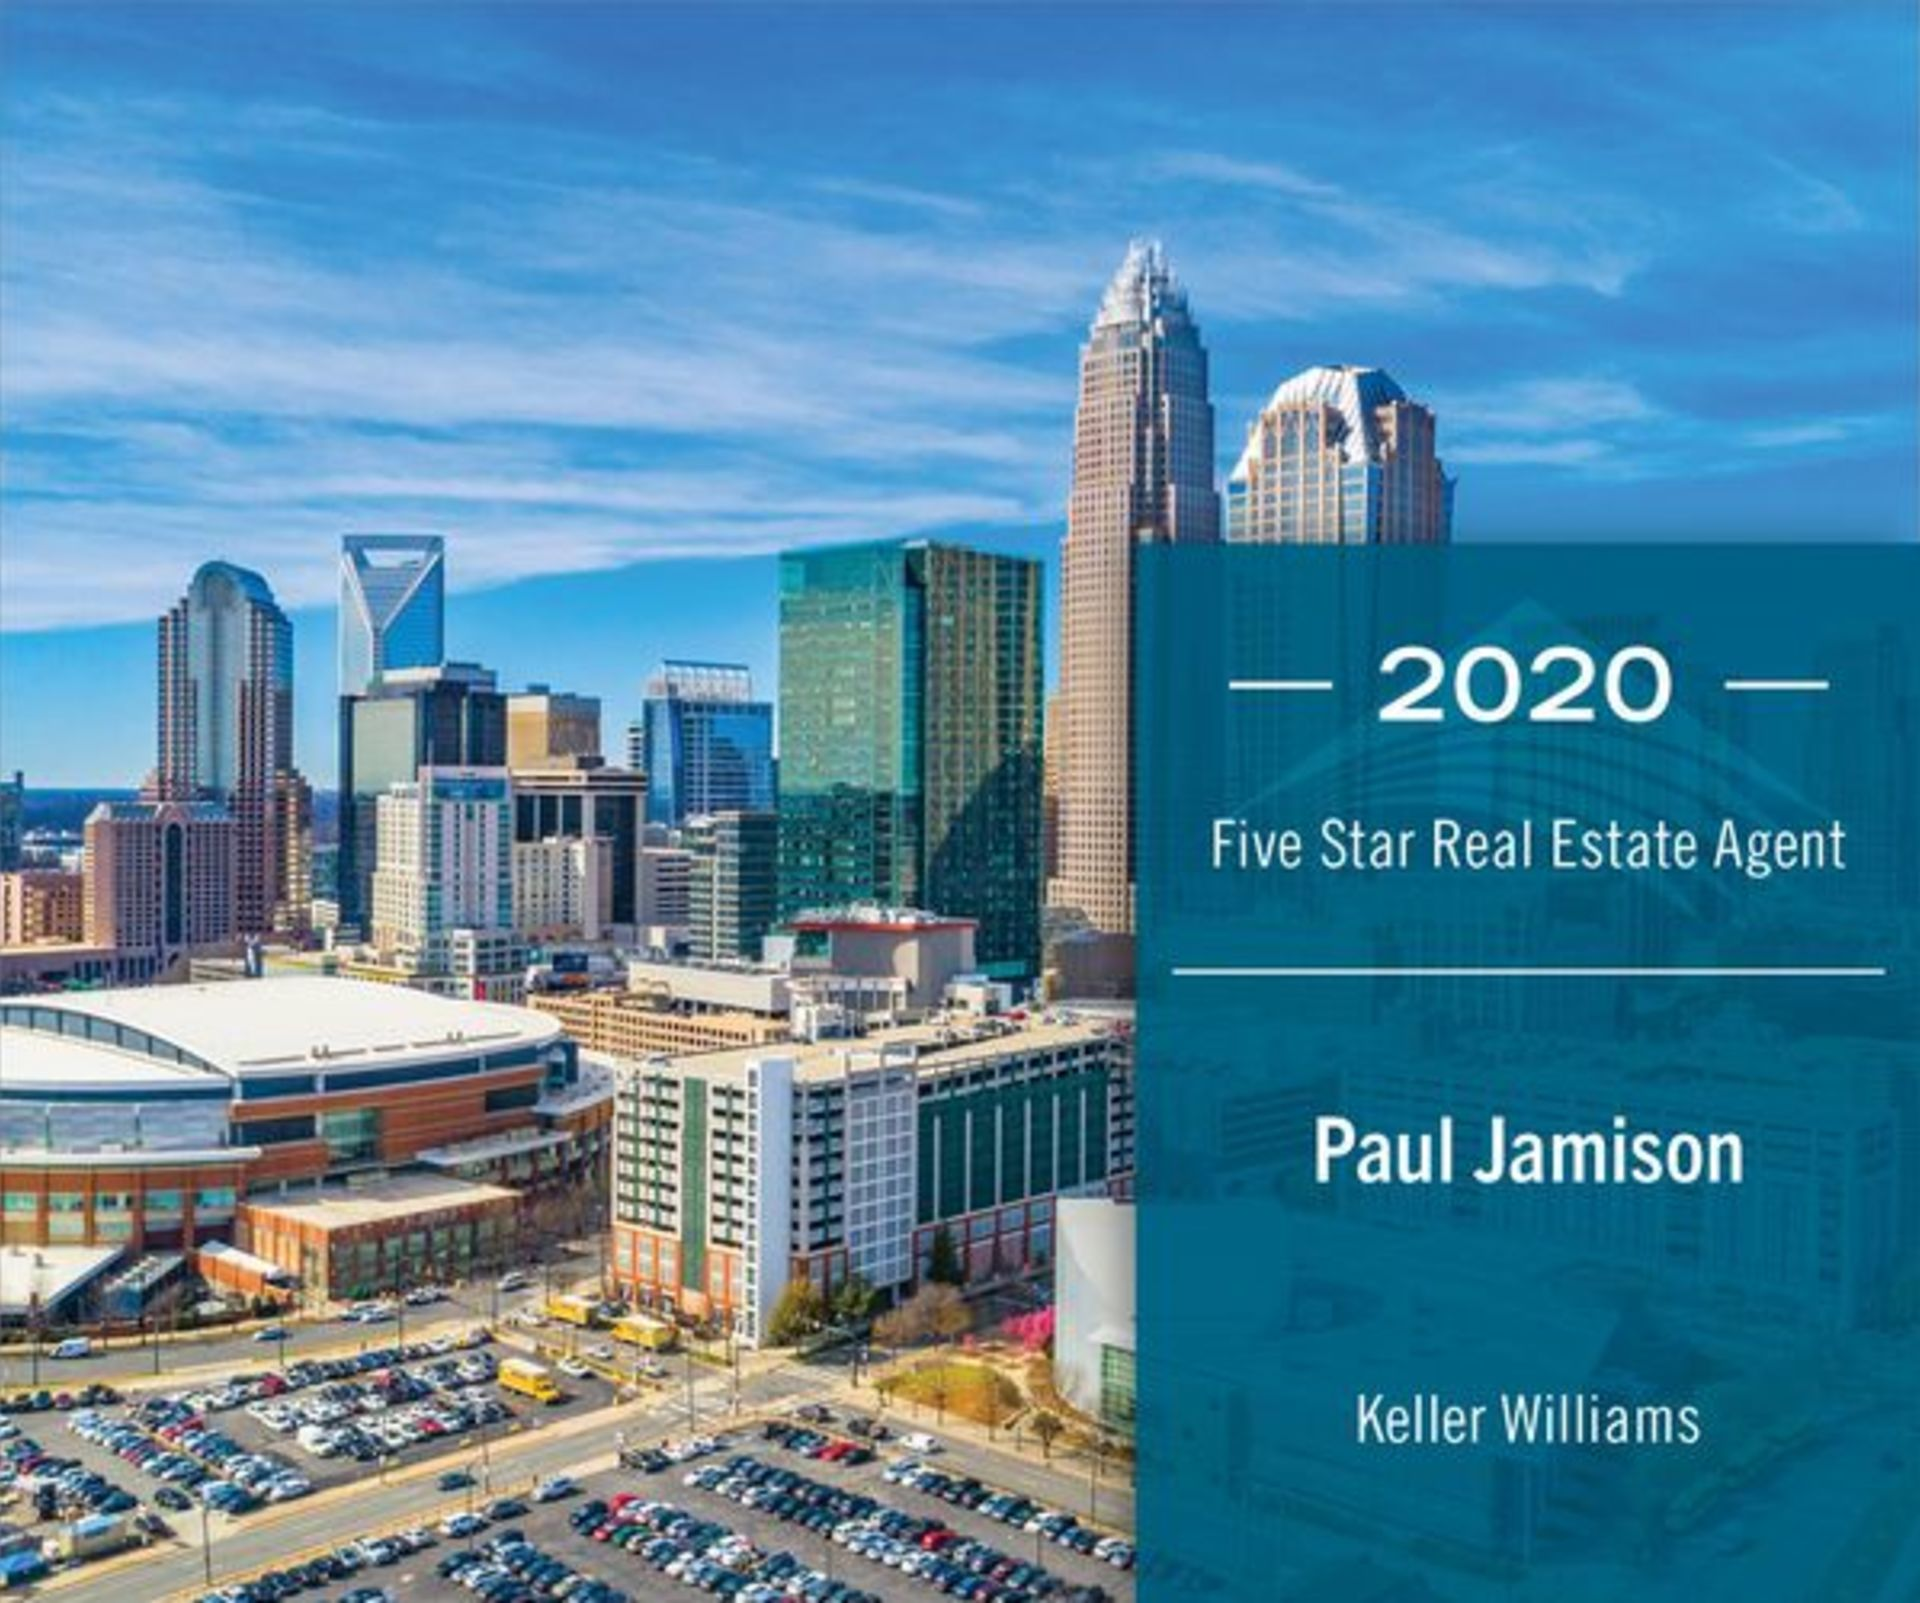 Paul Jamison Receives Five Star Real Estate Agent Award